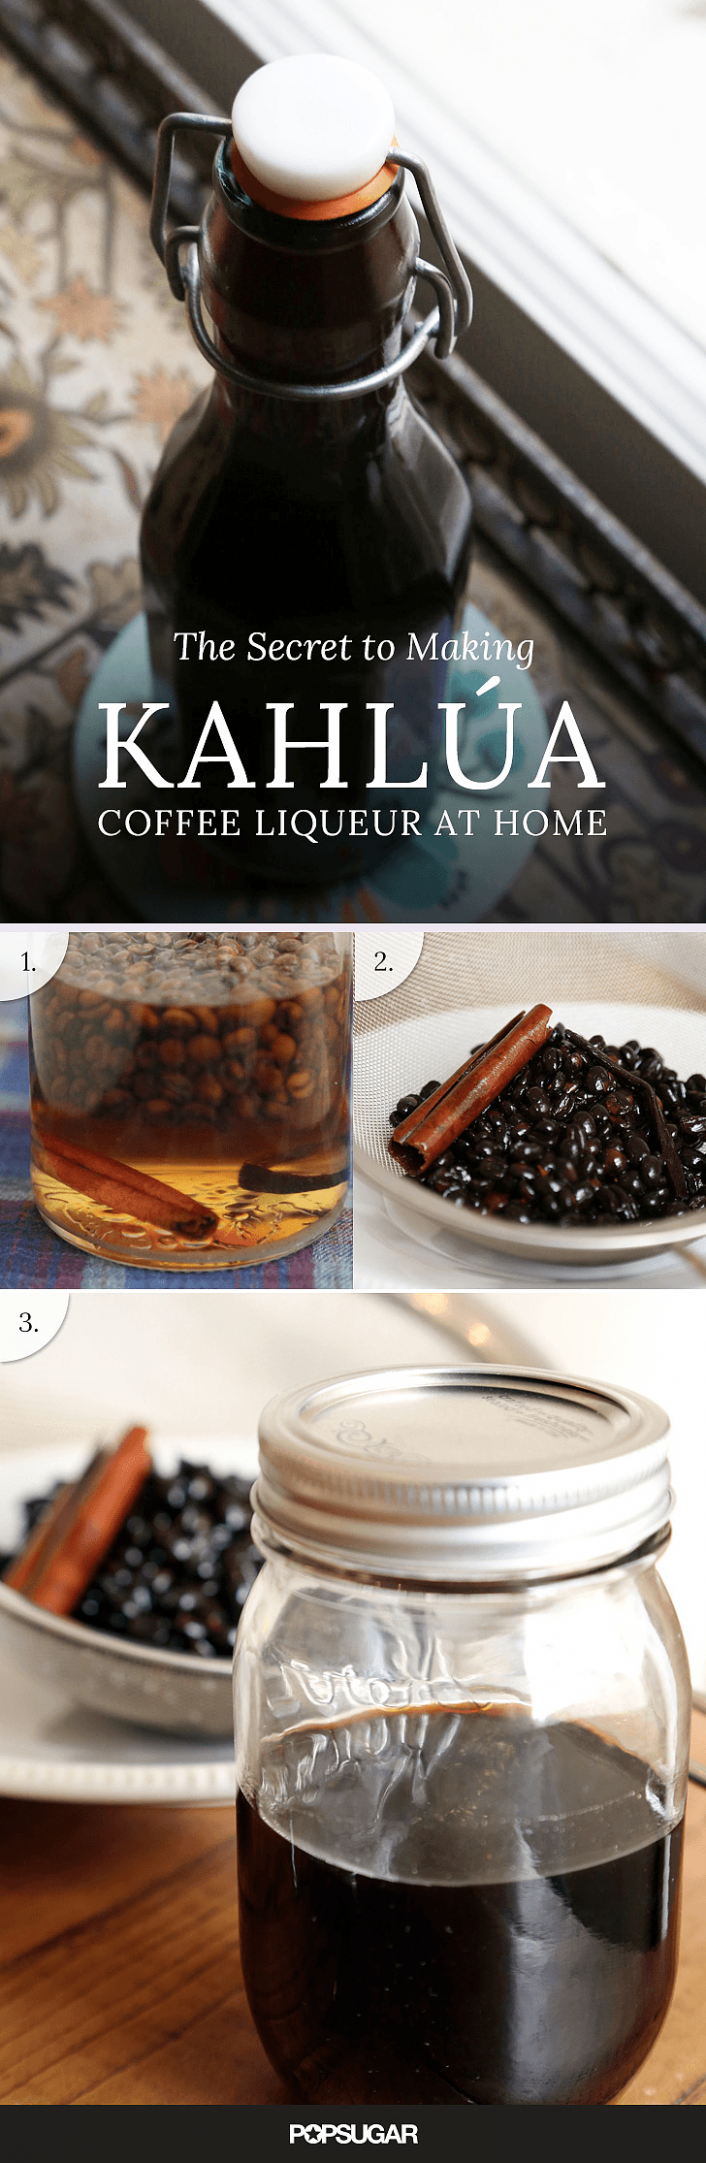 The Secret to Making Kahlúa Coffee Liqueur at Home - food recipes using kahlua